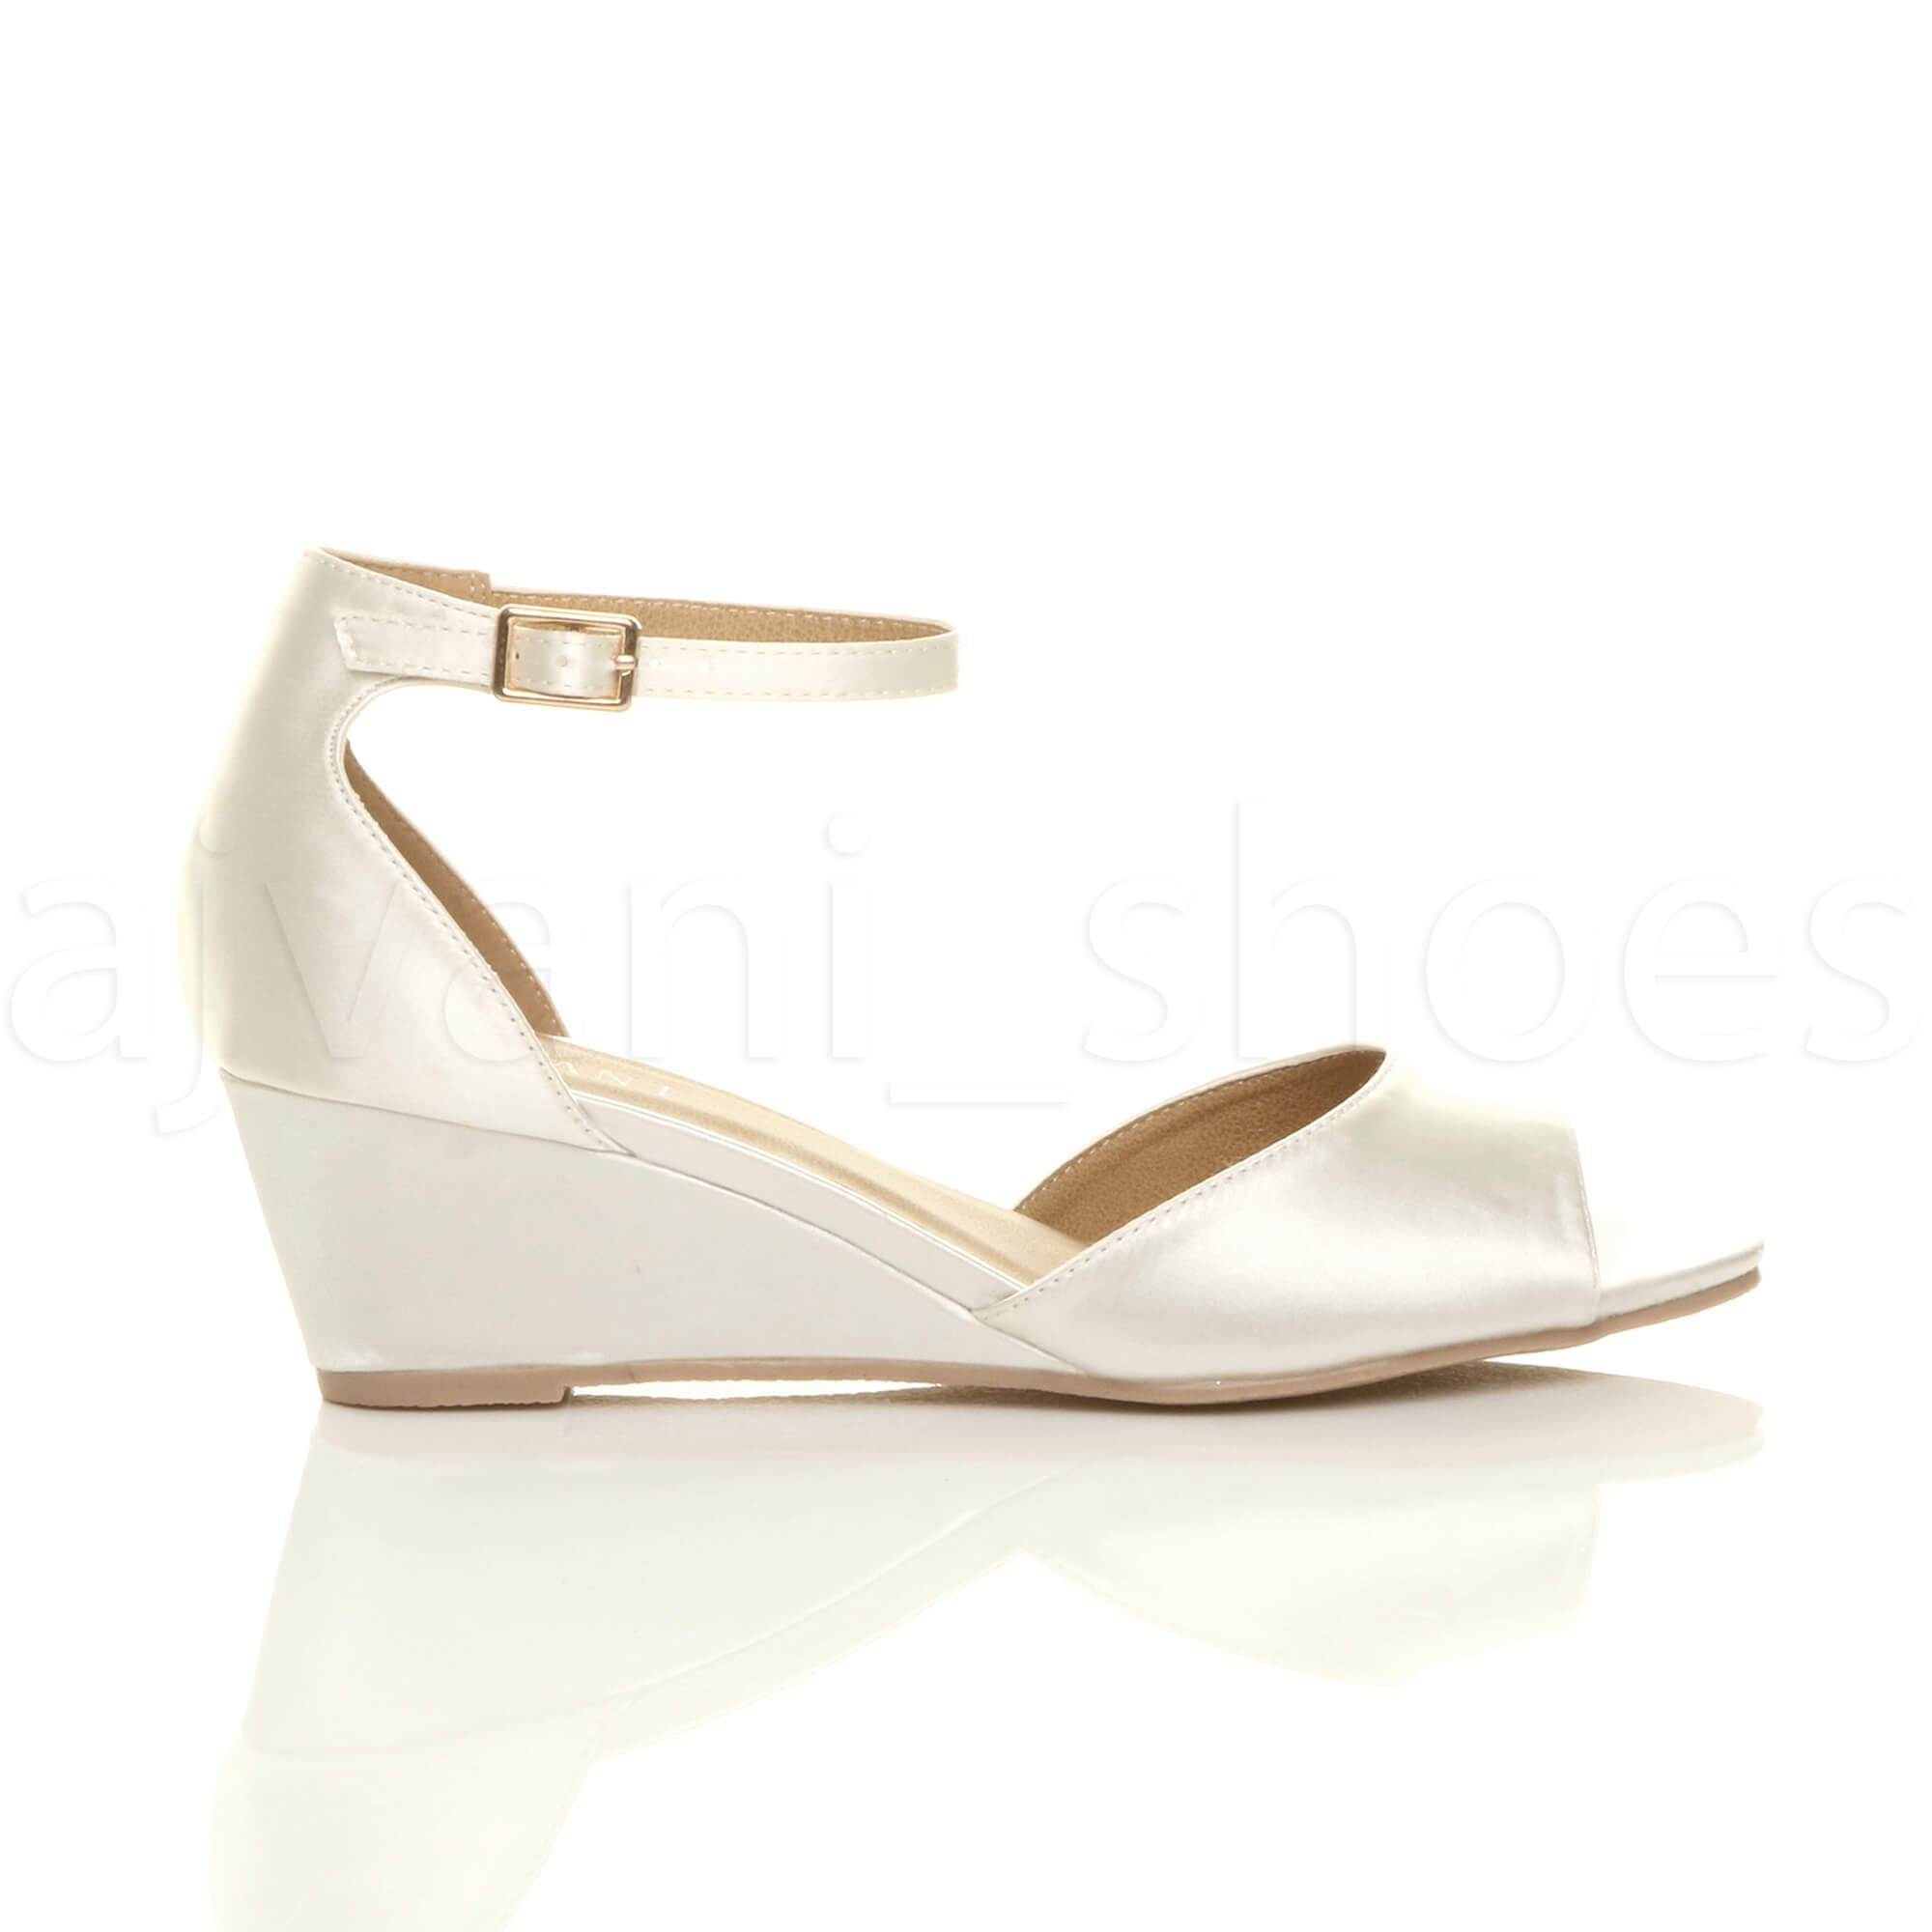 WOMENS-LADIES-LOW-MID-WEDGE-HEEL-ANKLE-STRAP-SMART-CASUAL-EVENING-SANDALS-SIZE thumbnail 67